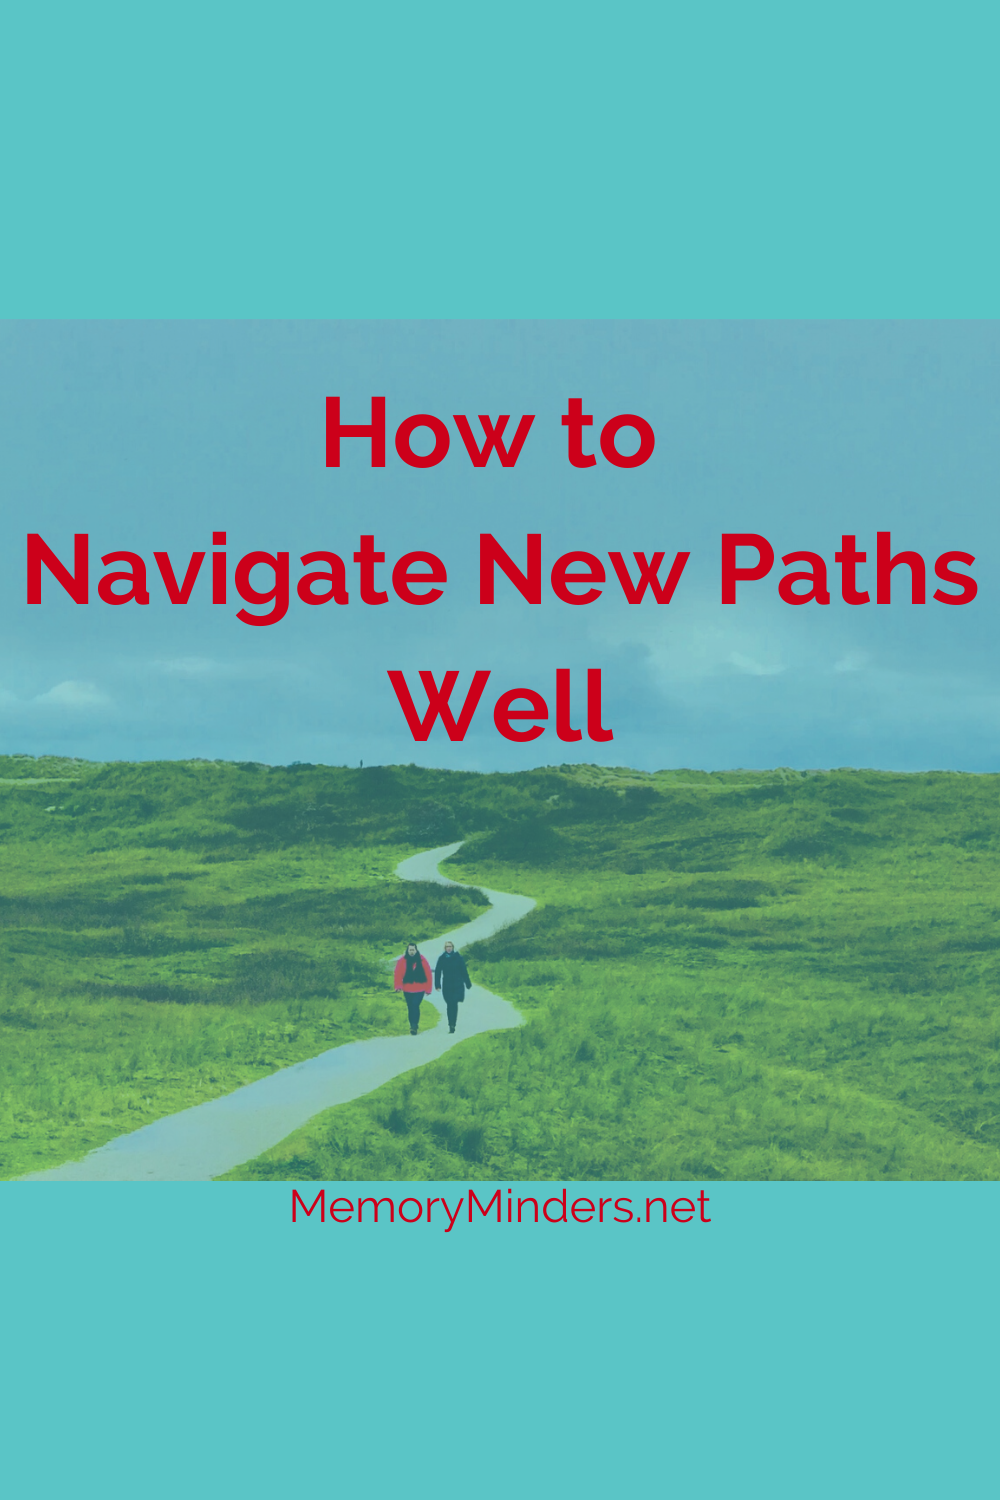 Navigating New Paths